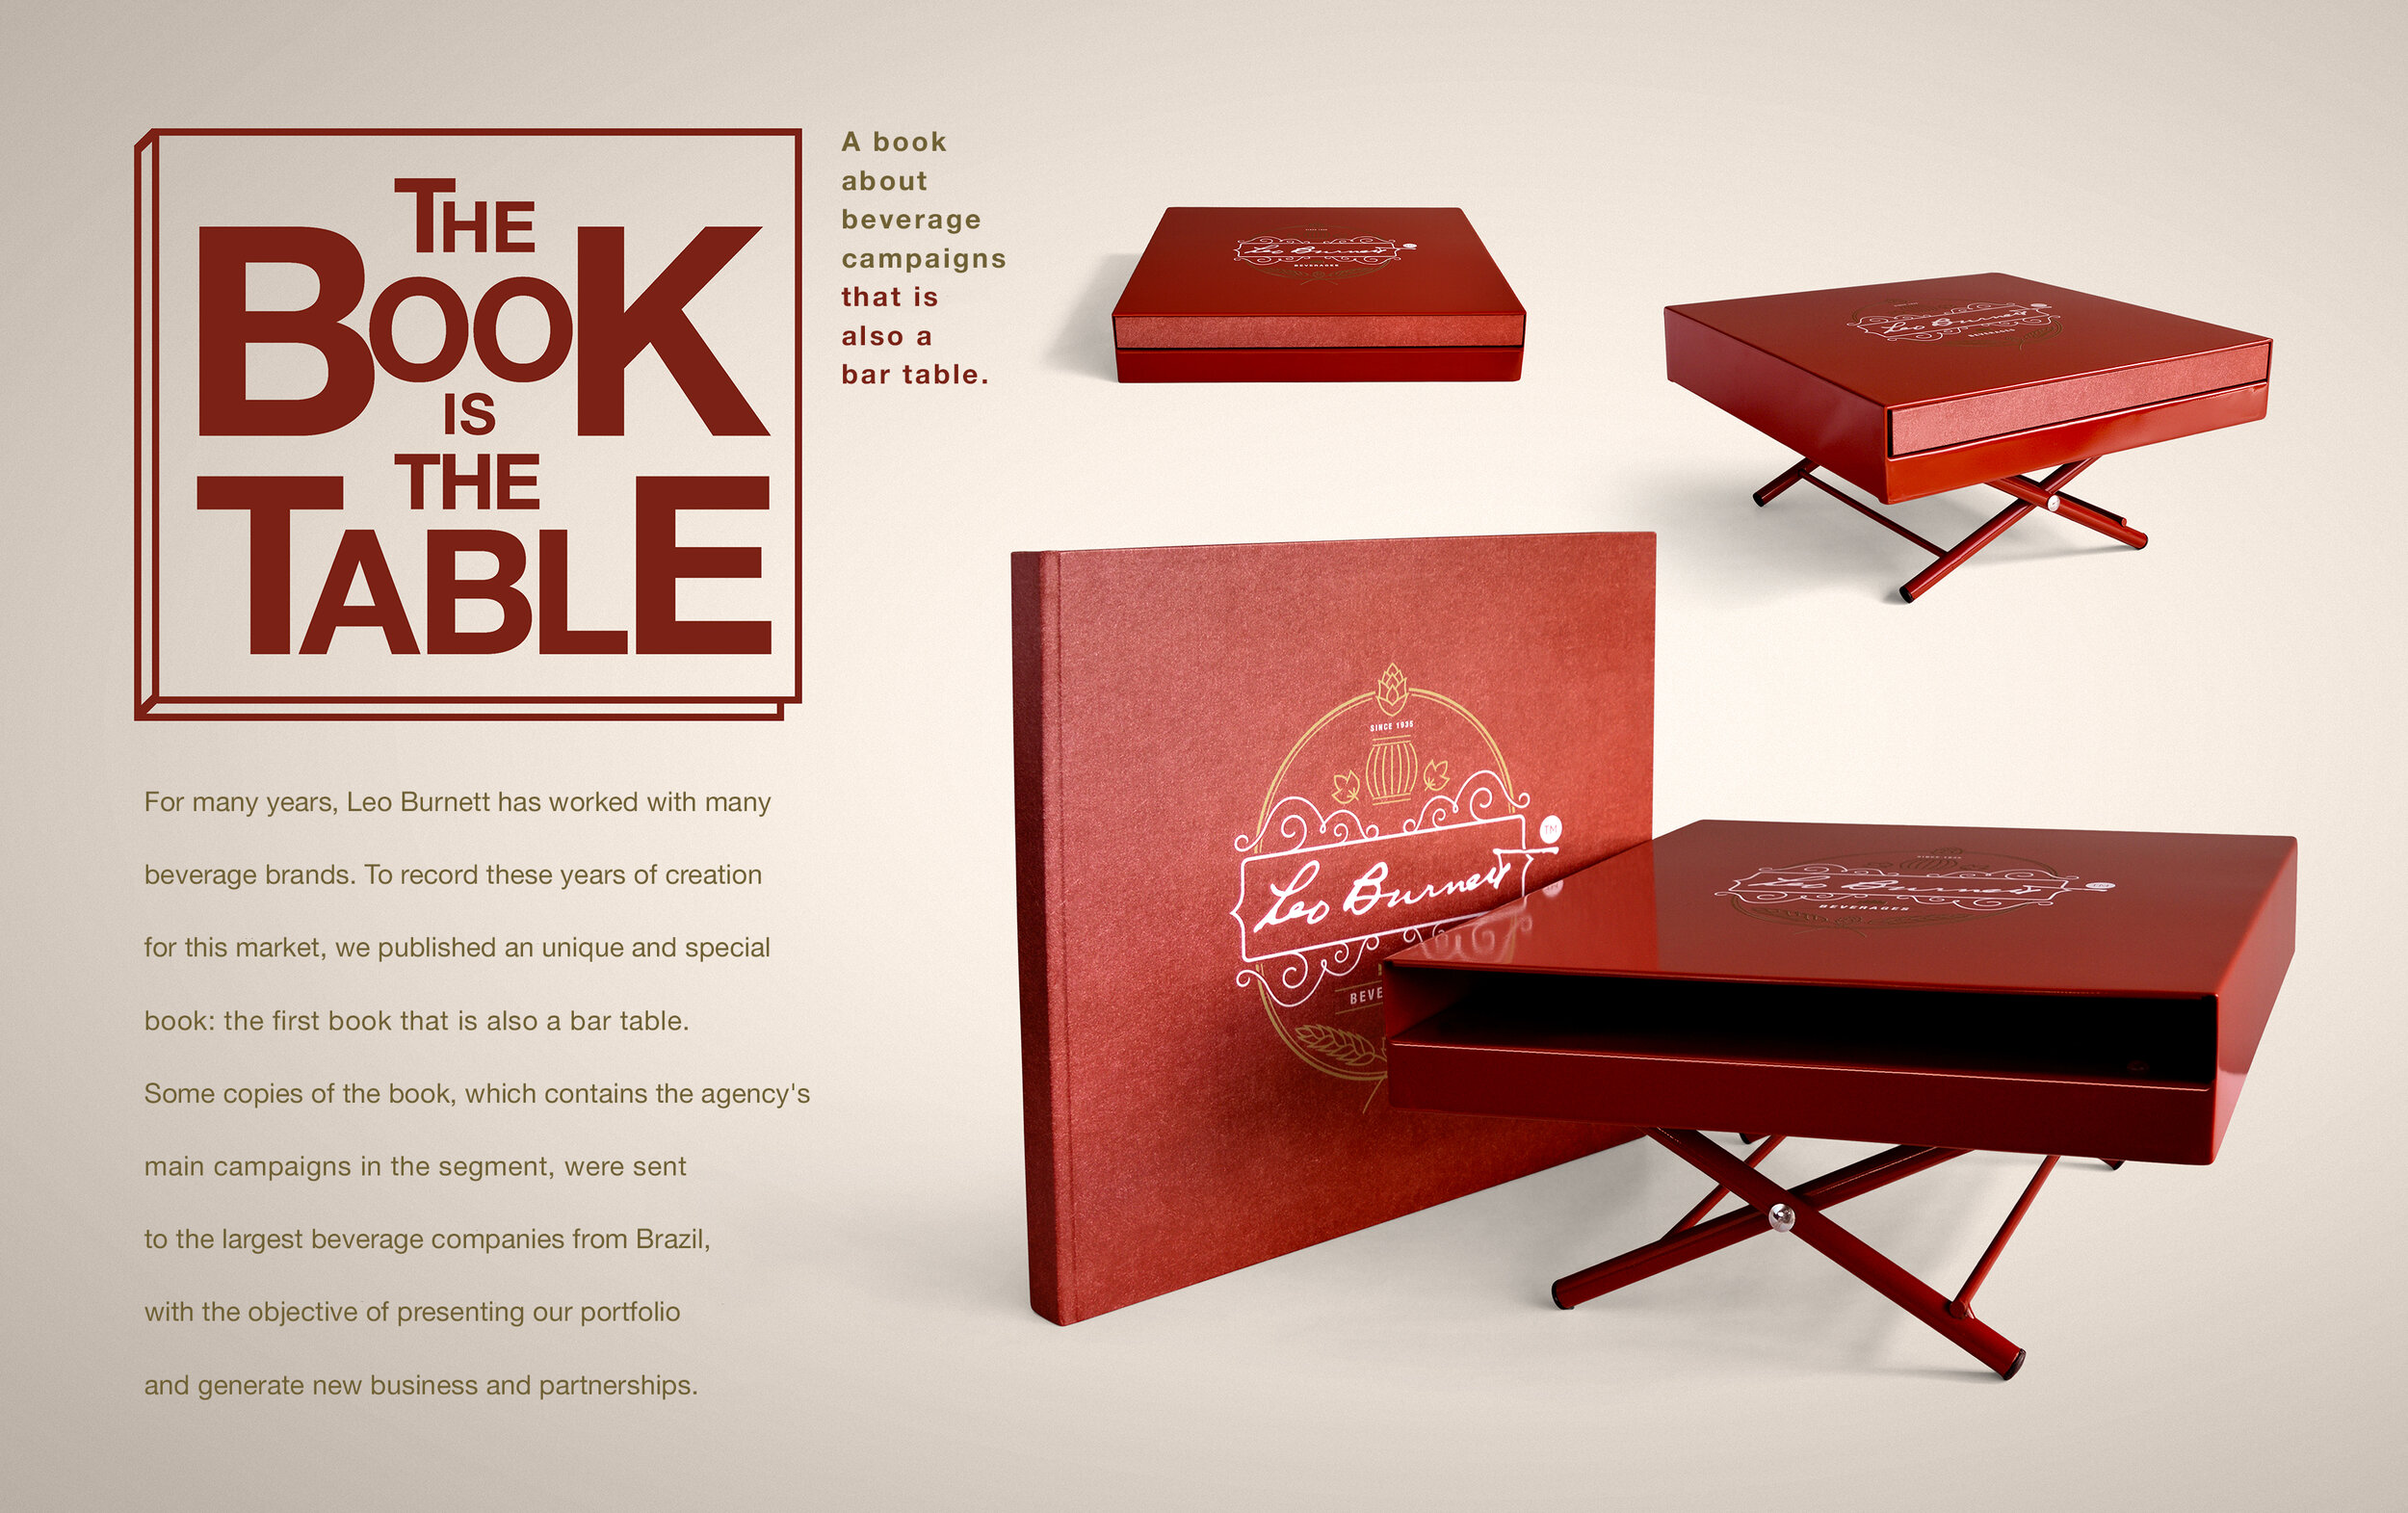 the-book-is-the-table-pasta.jpg